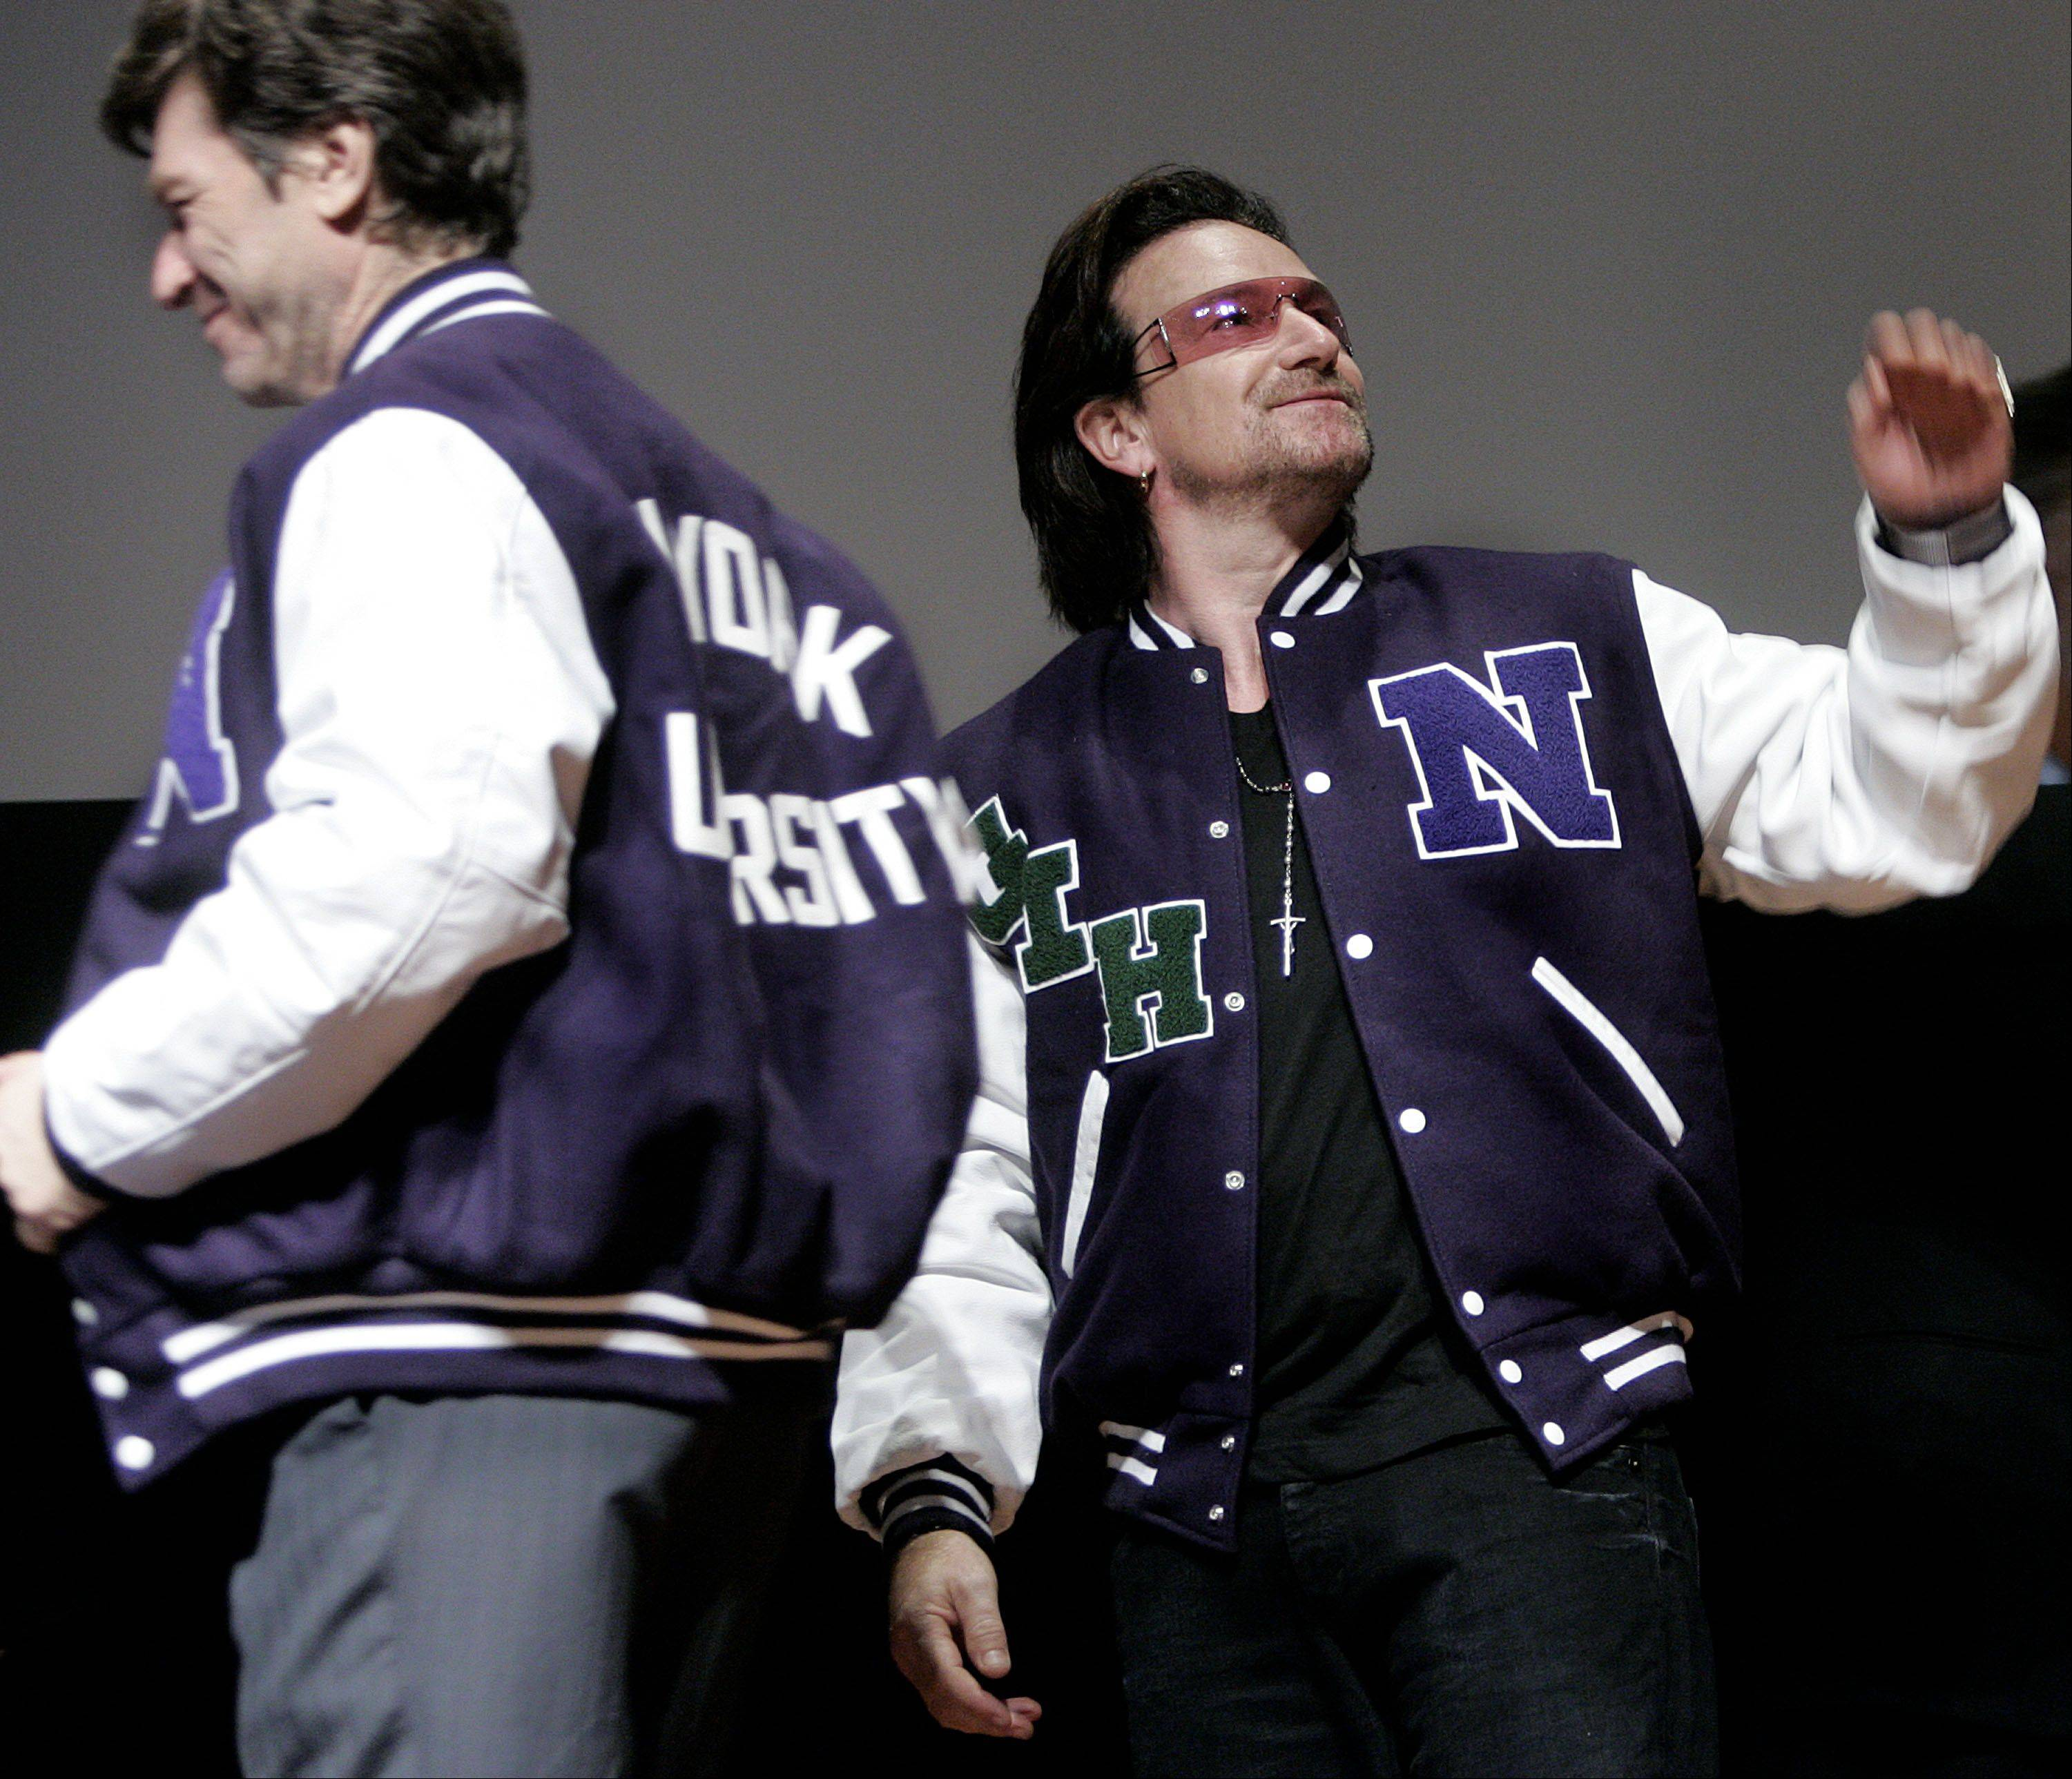 U2's Bono, right, turns to wave as he and Dr. Jeffrey Sachs, left, sport their new NYU jackets after the inaugural Daniel Patrick Moynihan lecture series, Wednesday, Oct. 5, 2005 at New York University in New York. Introduced by Bono fellow activist Dr. Jeffrey Sachs spoke about the eradication of poverty and Third World debt relief.